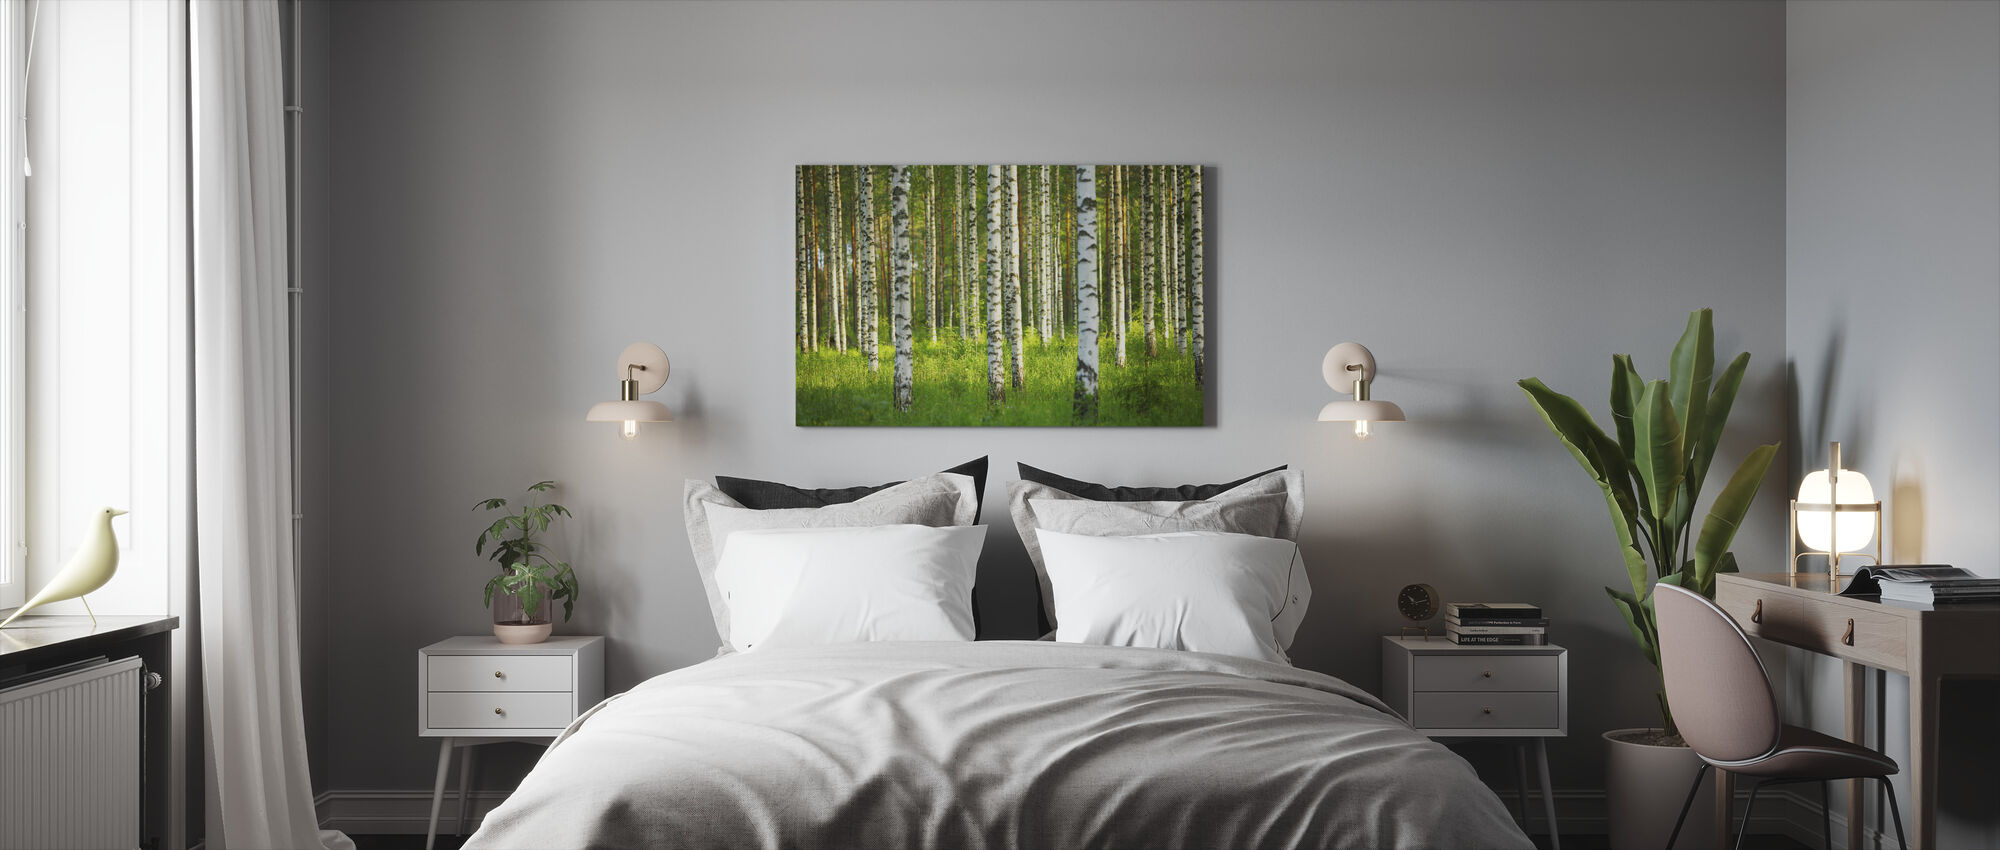 Birch Forest - Canvas print - Bedroom